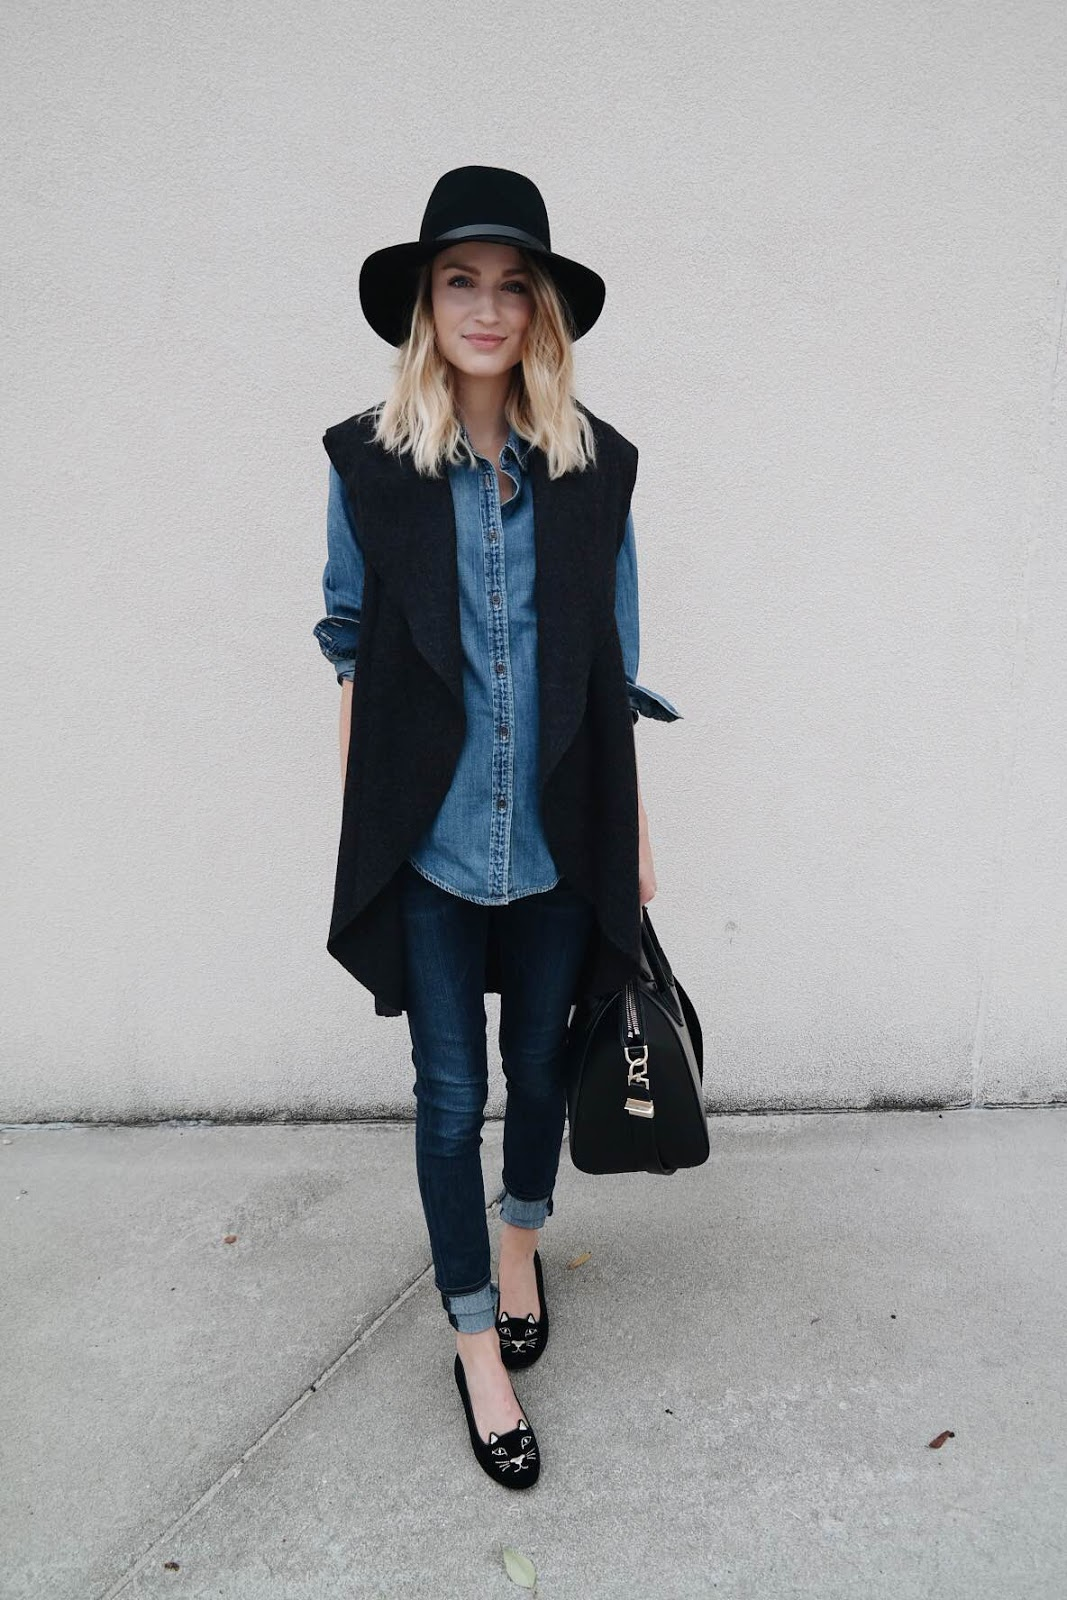 Top 3 Hats | Little Blonde Book A Fashion Blog By Taylor Morgan